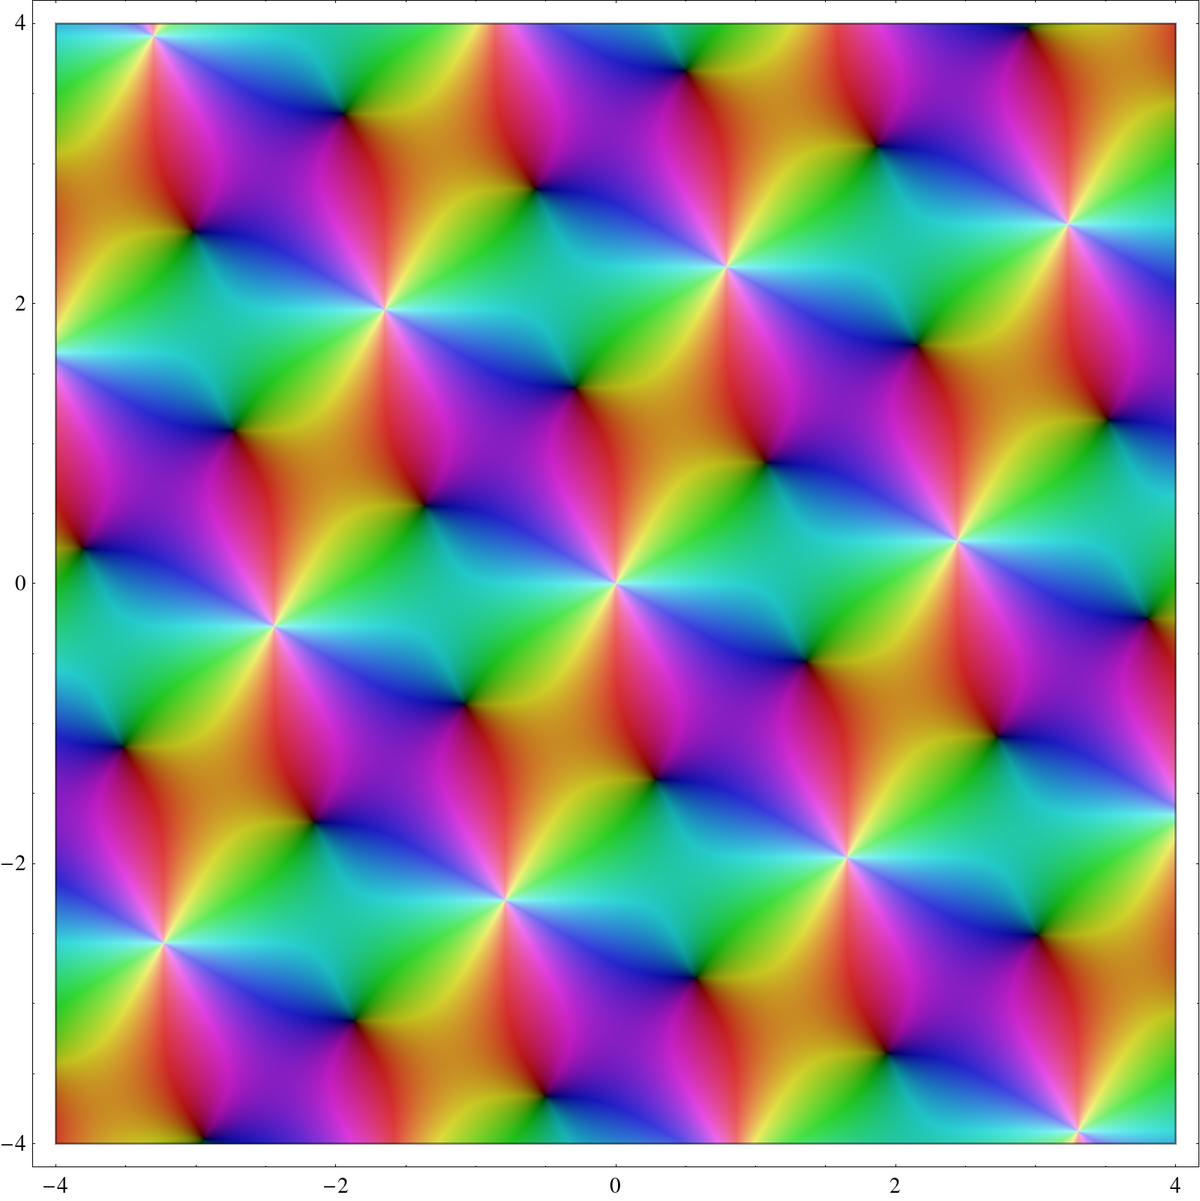 Weierstrass elliptic function P.png